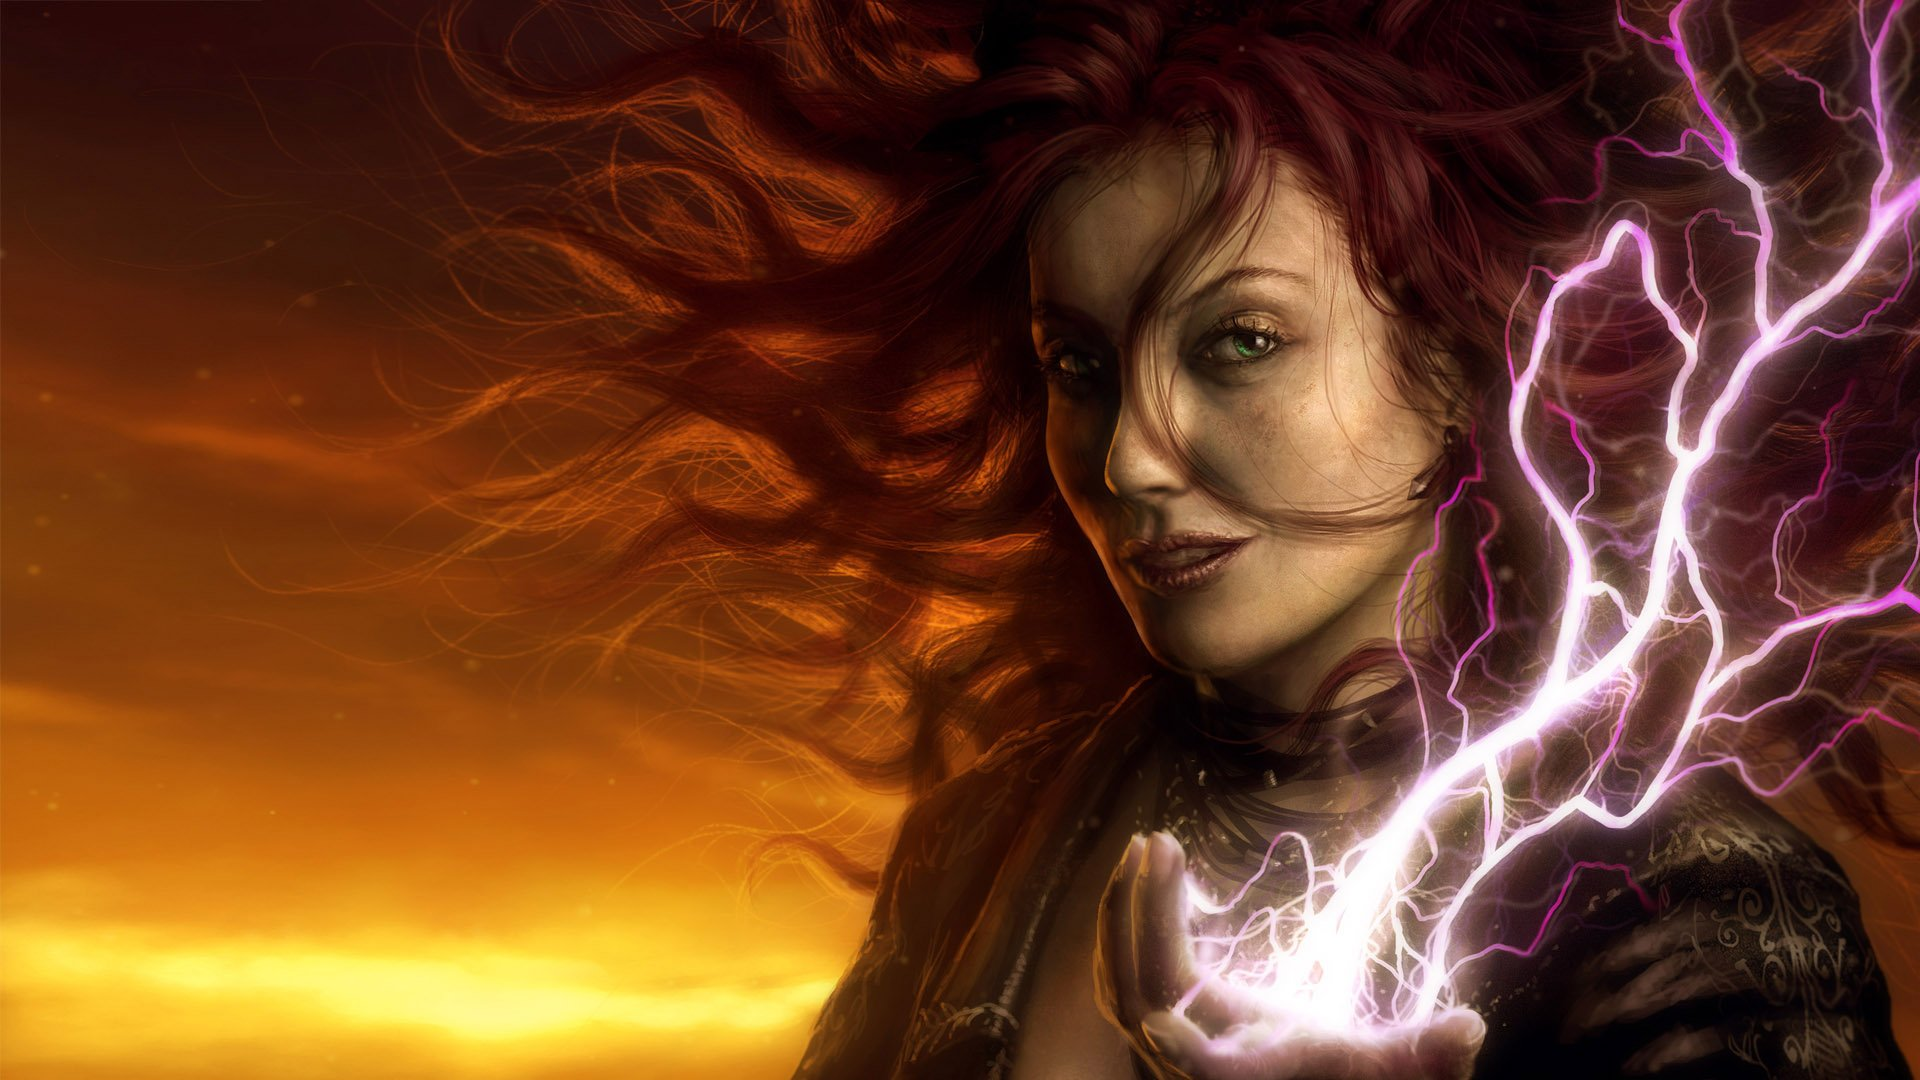 Fantasy - Witch  - Dark - Woman - Magic - Lightning - Redhead - Sunset - Electricity - Fantasy Wallpaper